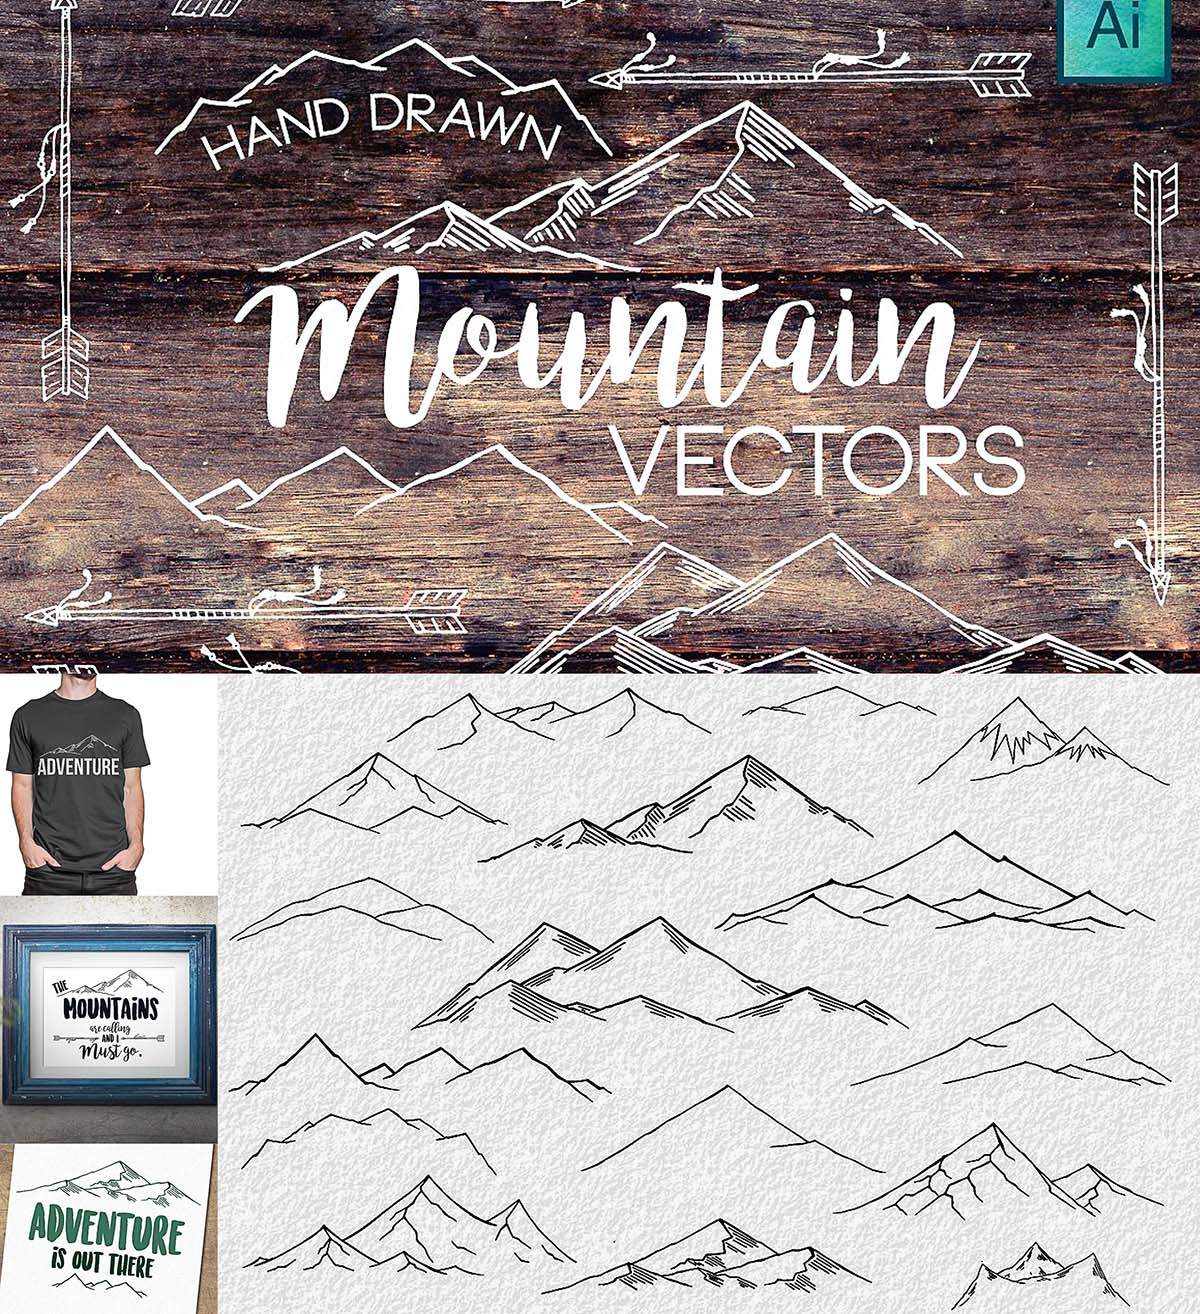 Hand drawn mountain vectors